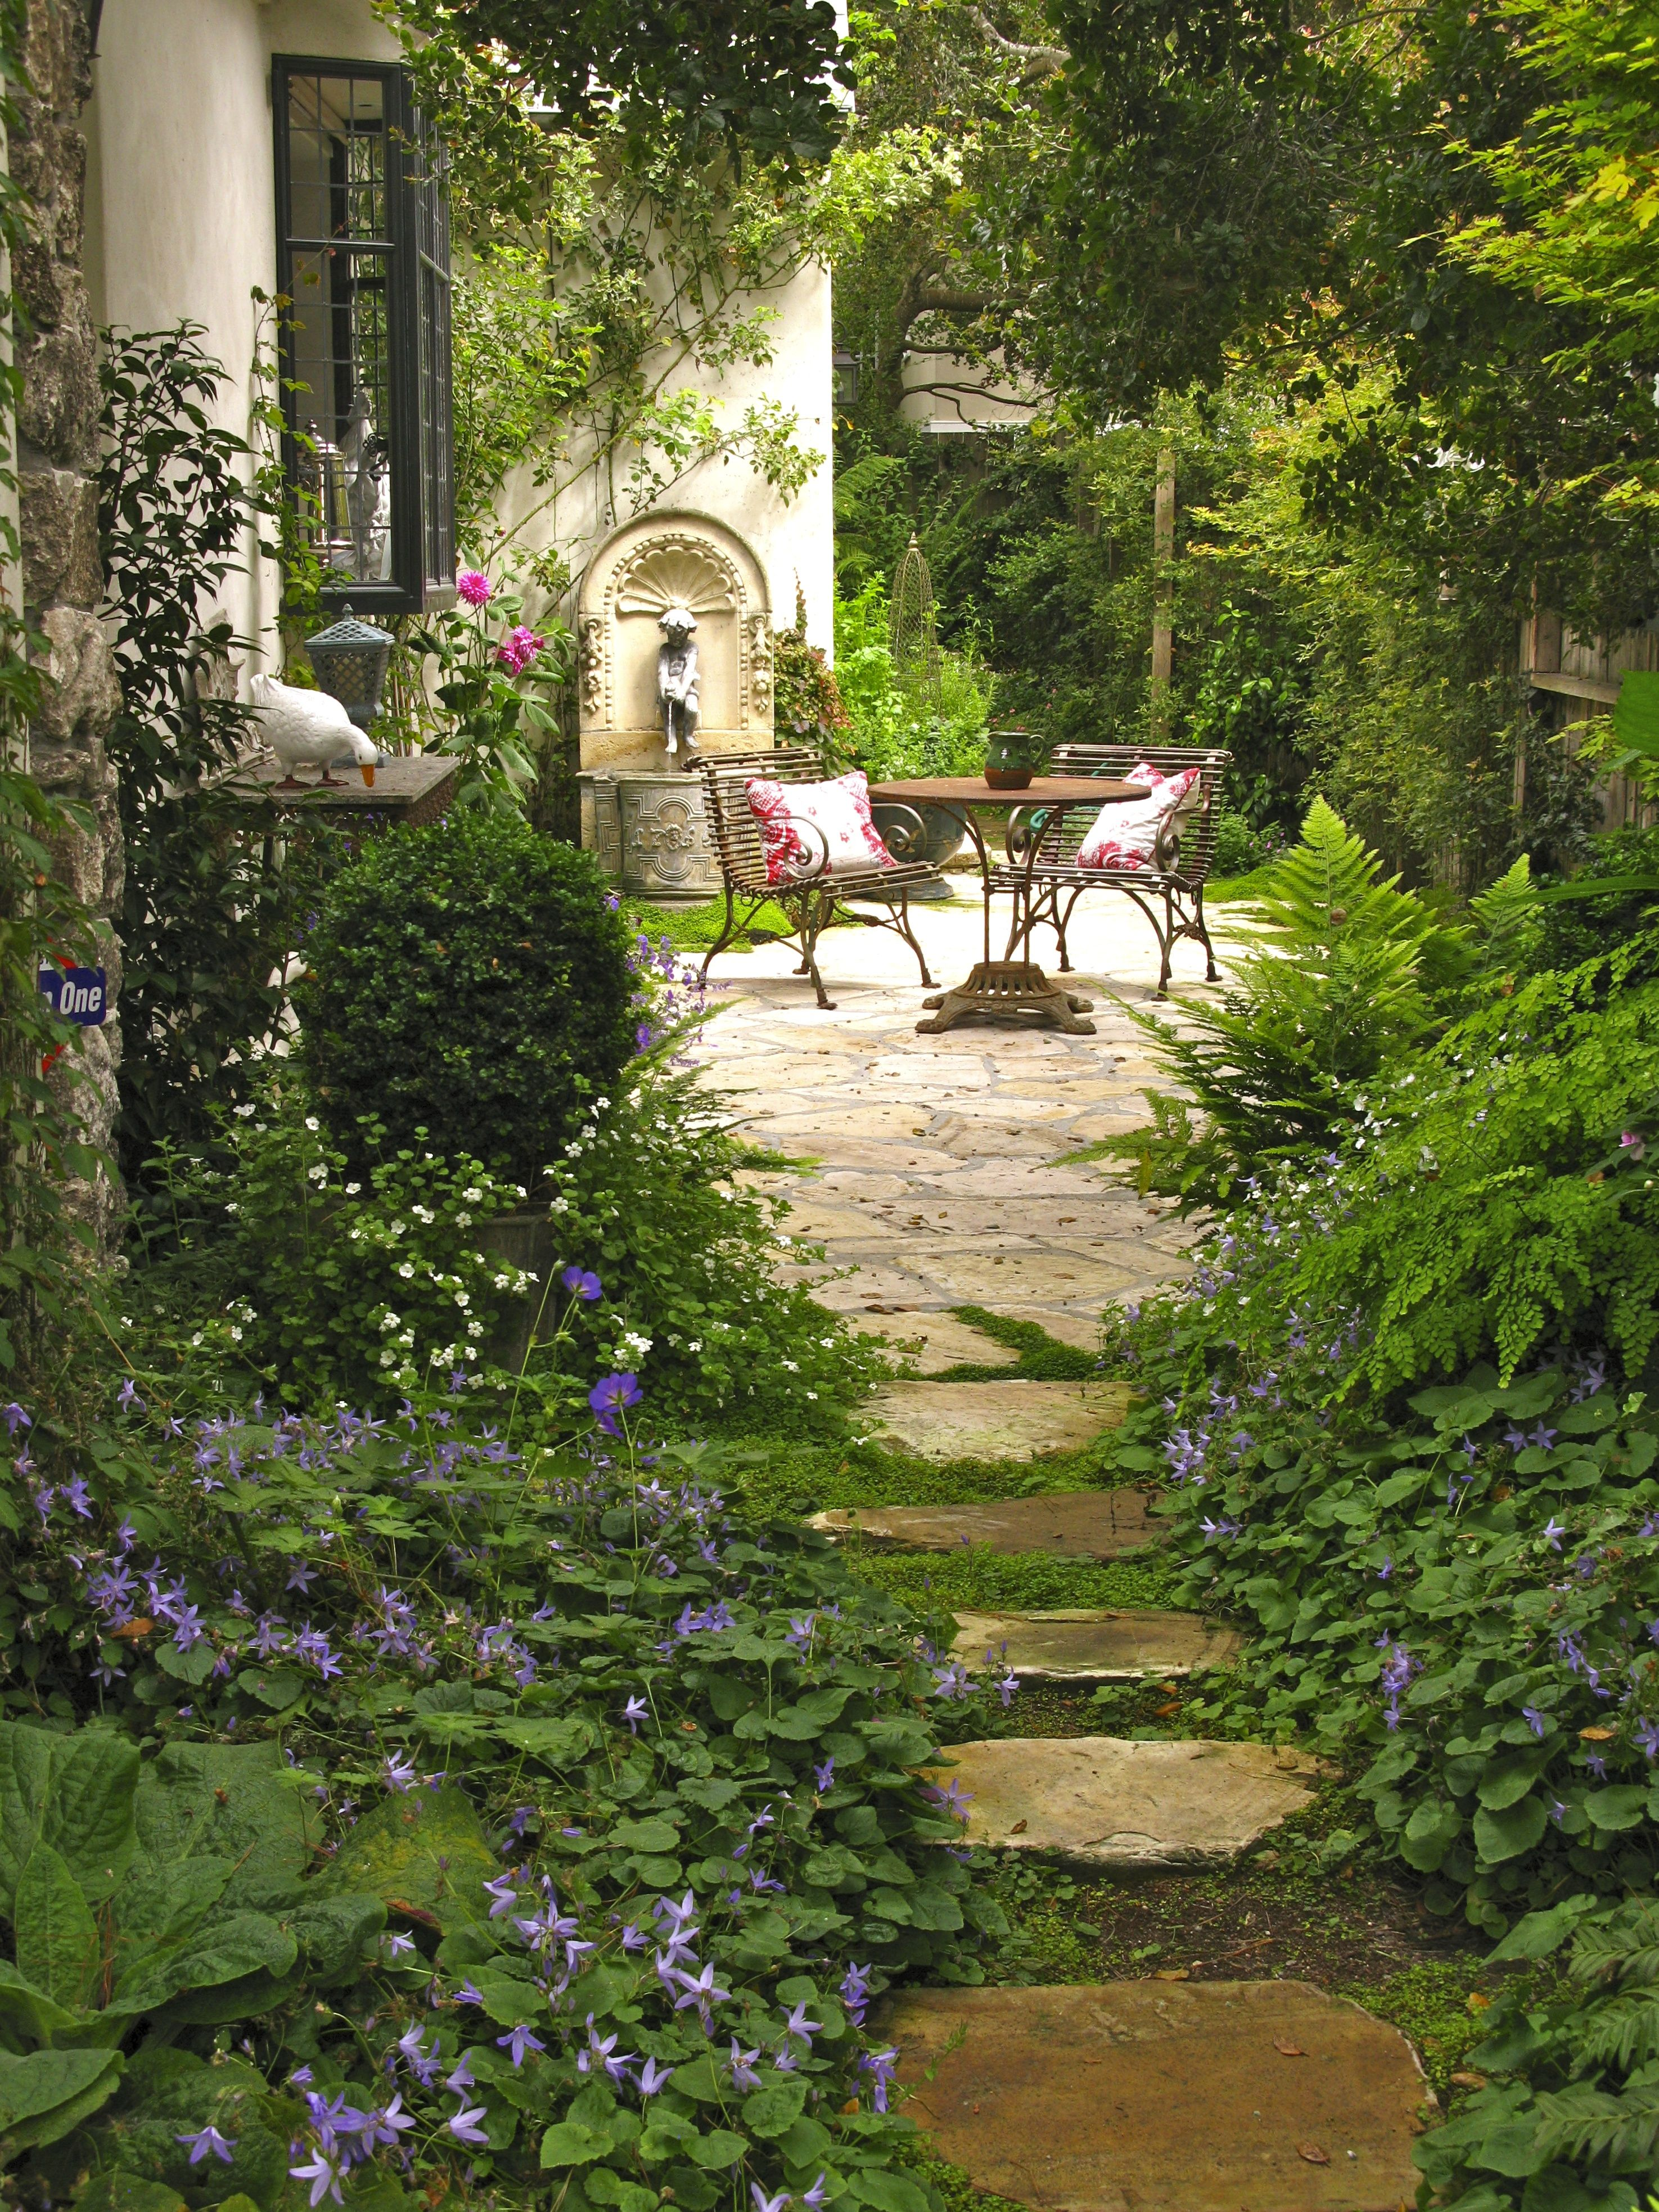 CARMEL'S COTTAGE GARDENS- Stitching the garden together with small flowers and ground covers.   Once upon a time..Tales from Carmel by the Sea